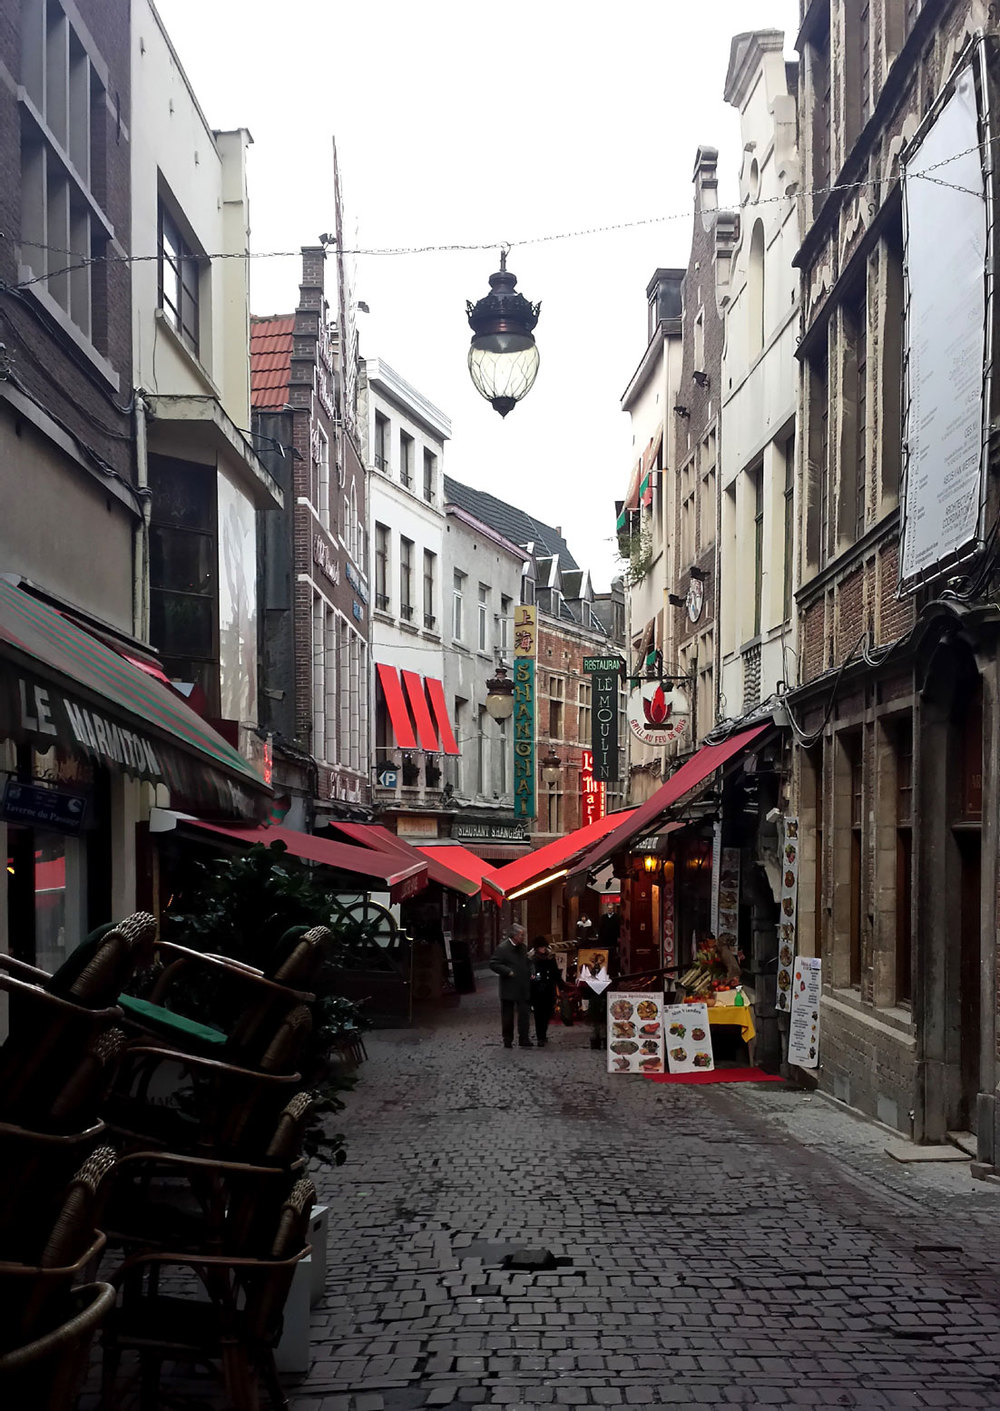 Brussels' side streets